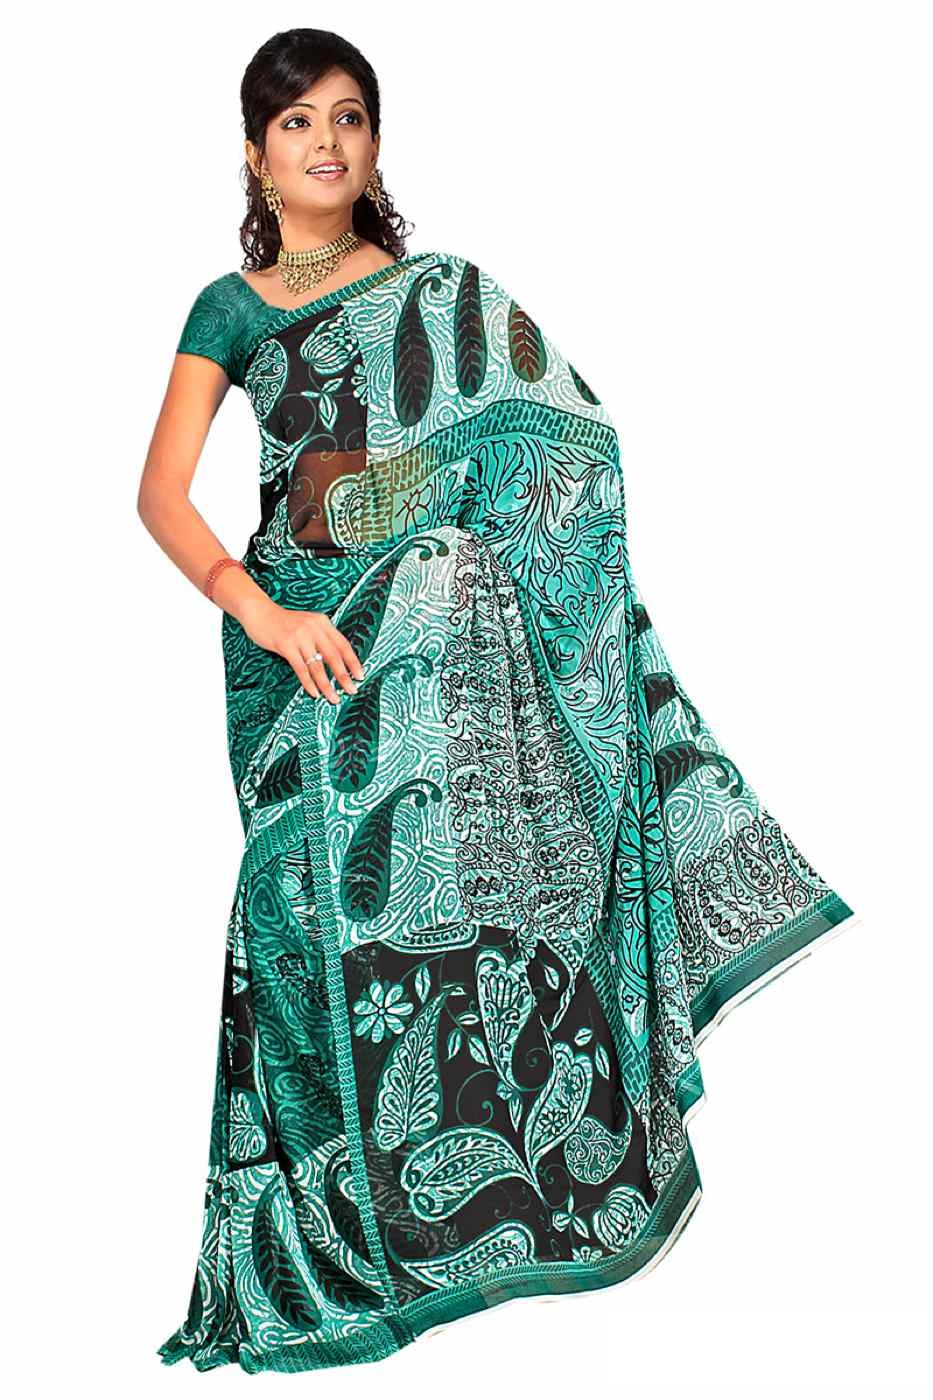 Indian Selections Chitrani Georgette Printed Casual Saree Sari Bellydance fabric at Sears.com